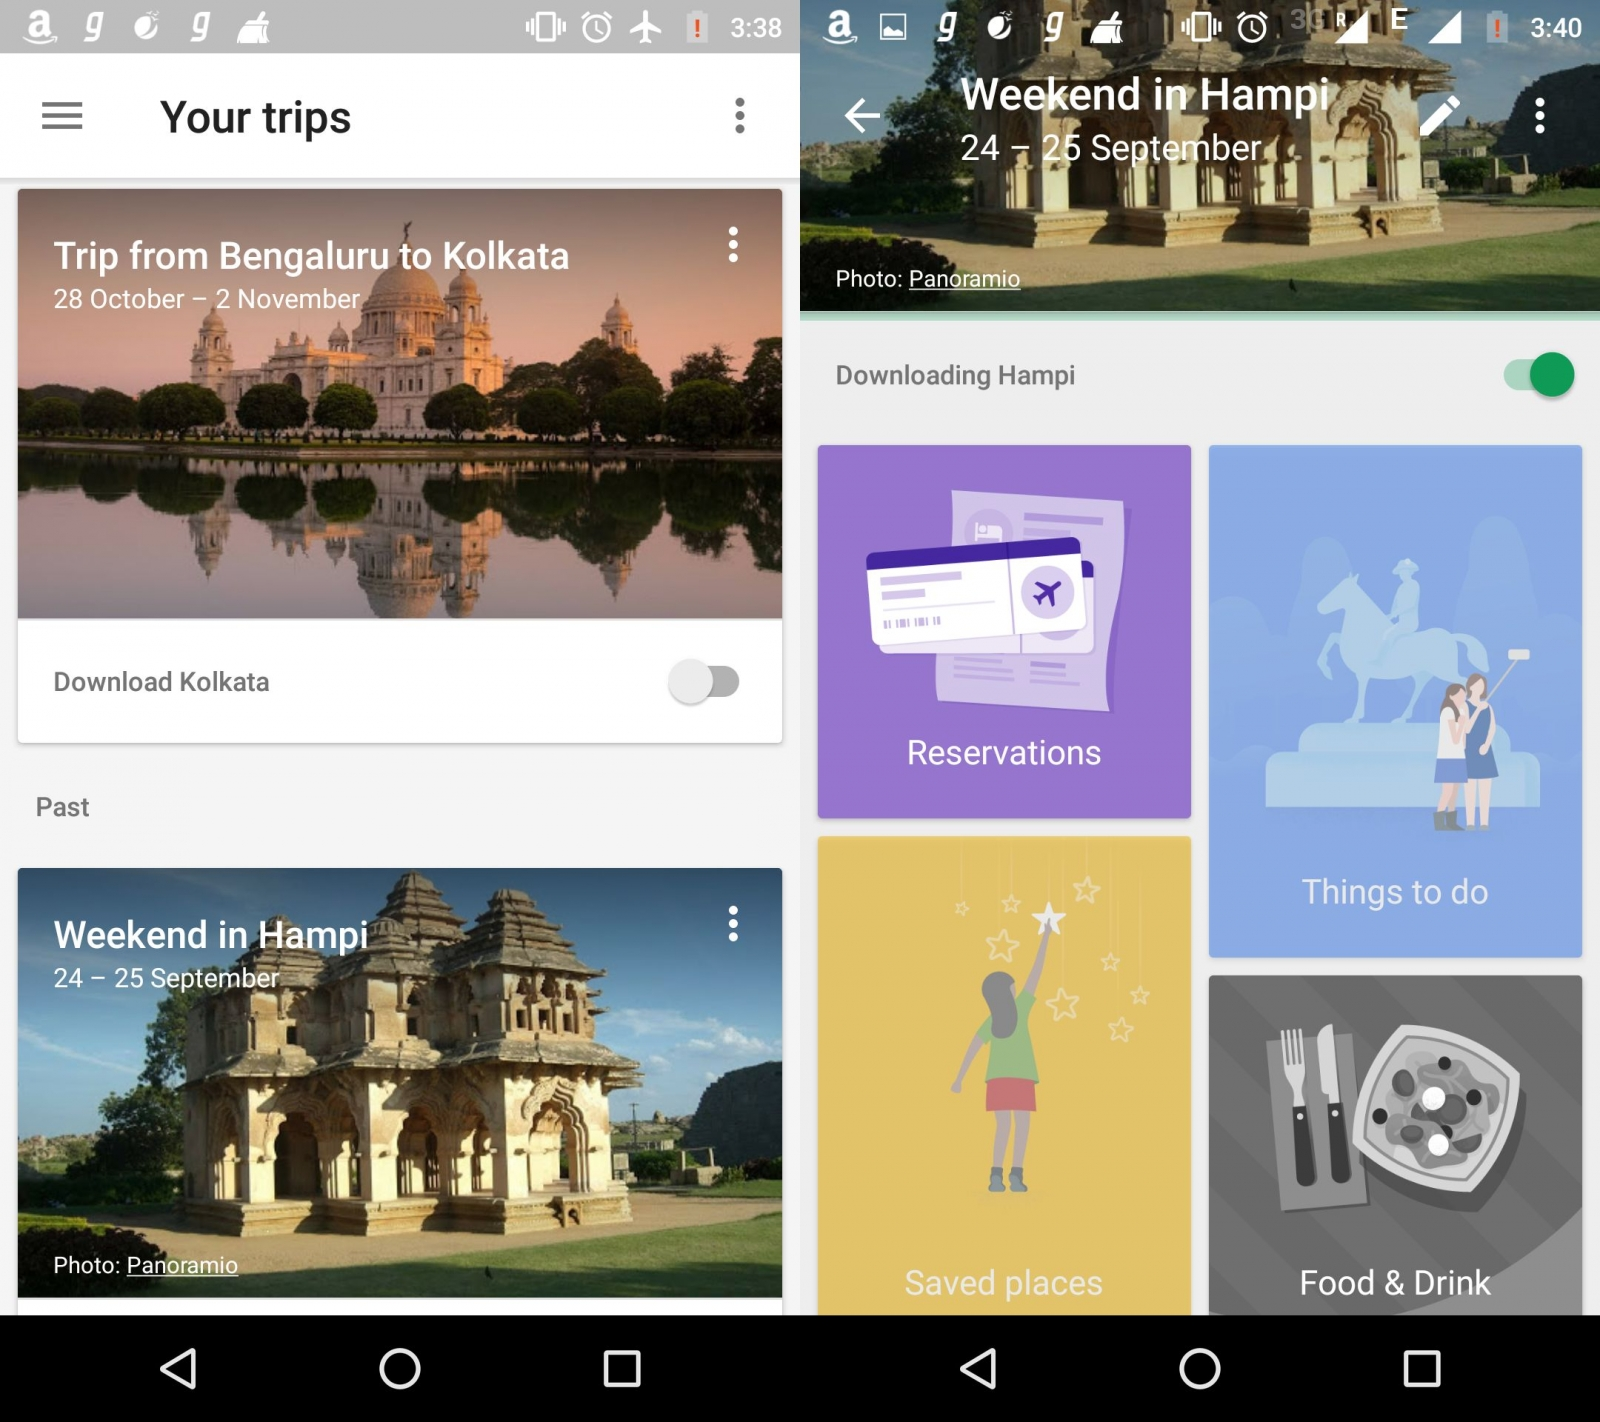 Top Android apps of 2016: Prisma, Google Allo, Signal, Reddit and more